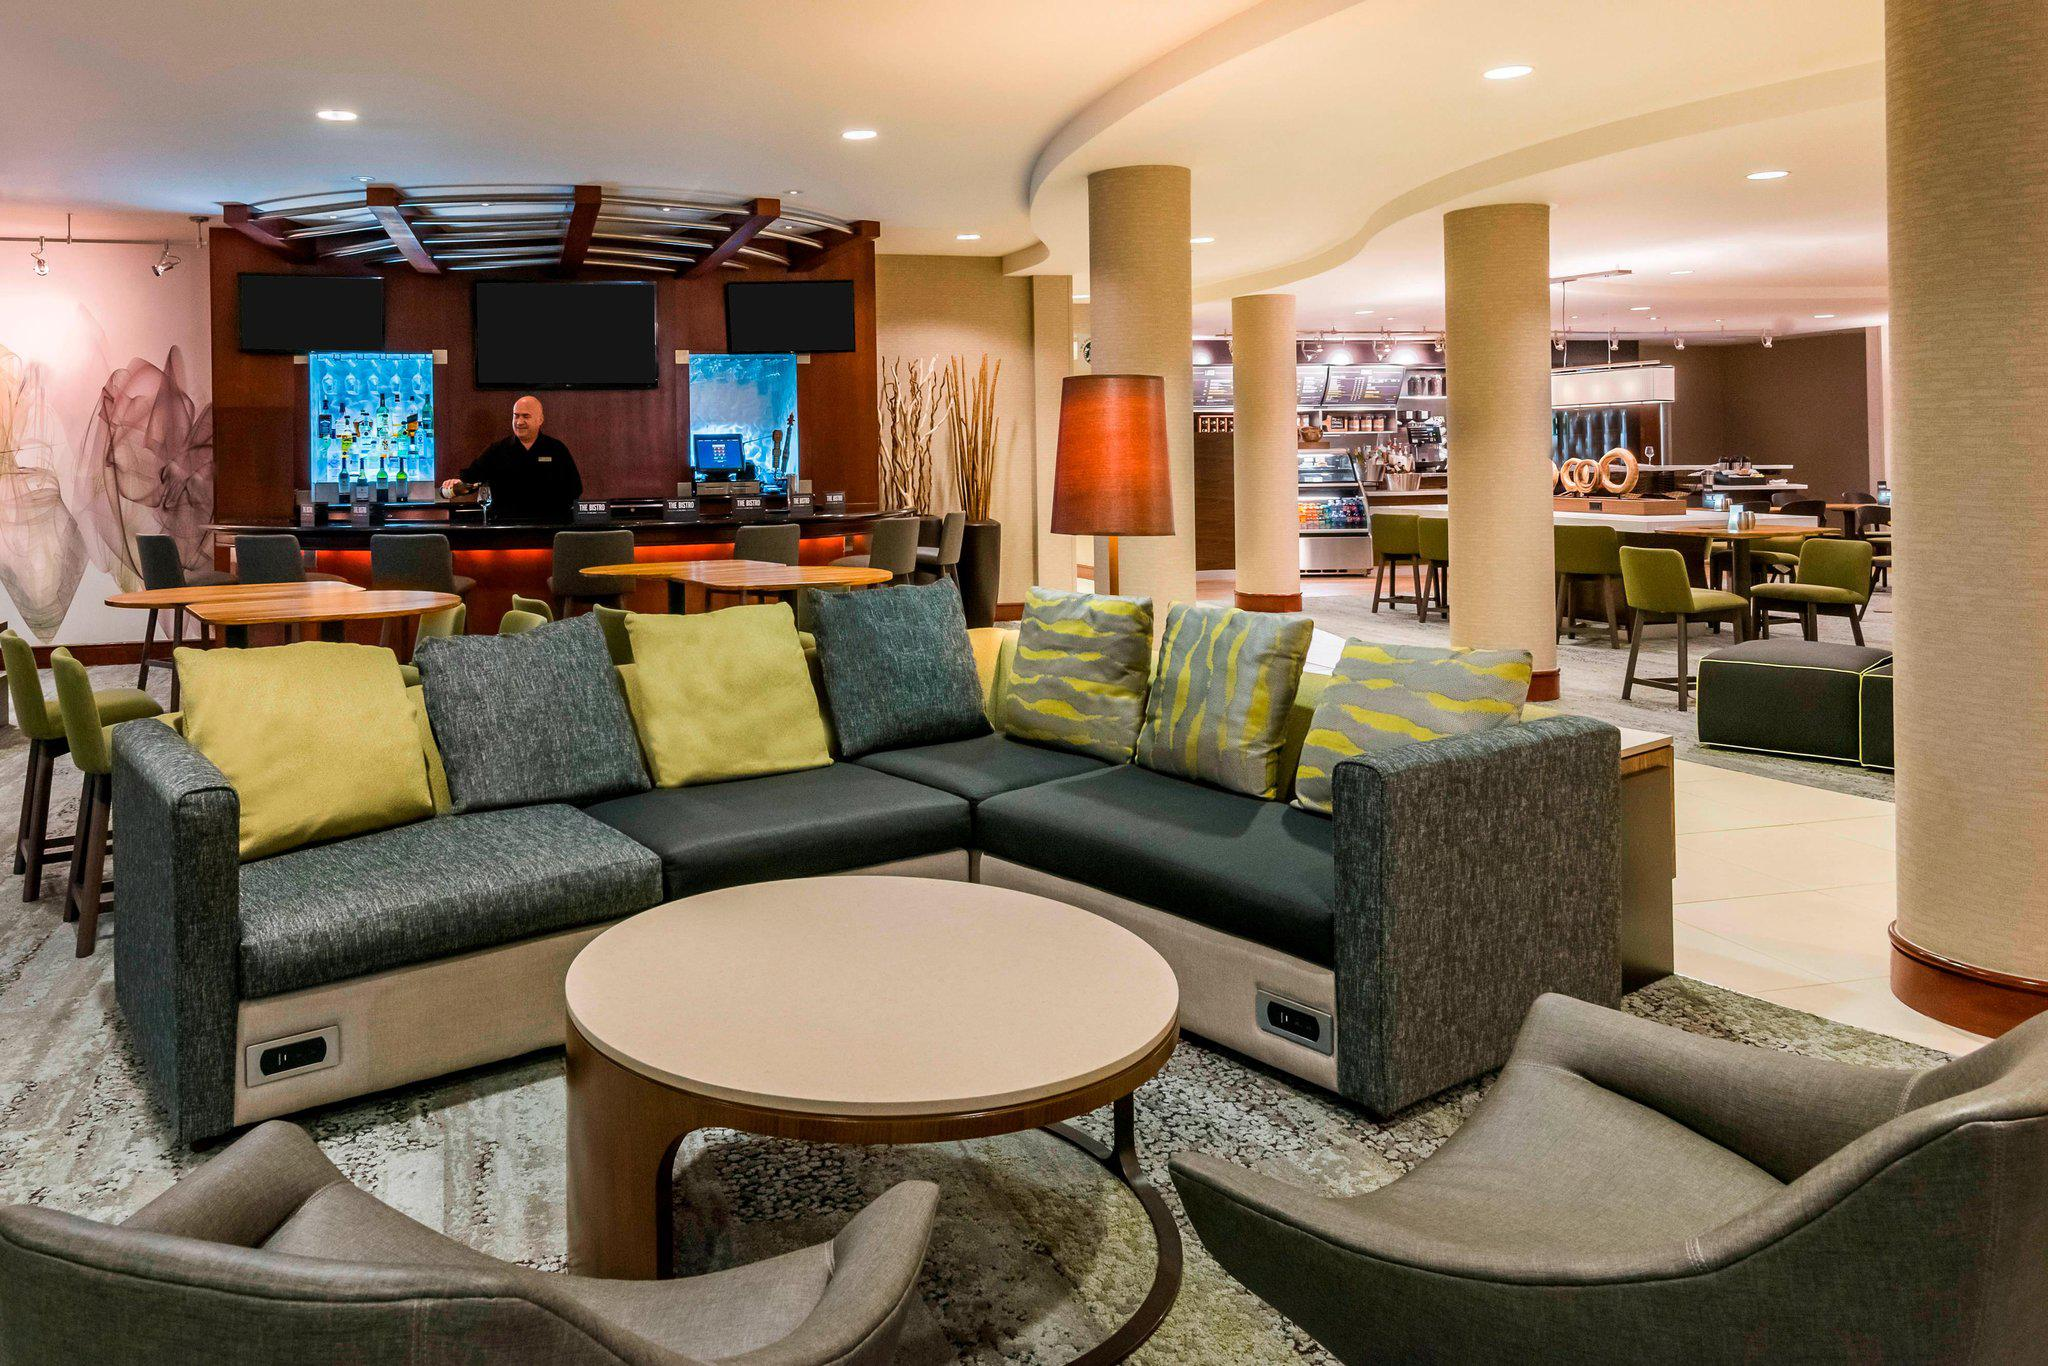 Courtyard by Marriott Fort Myers at I-75 and Gulf Coast Town Center